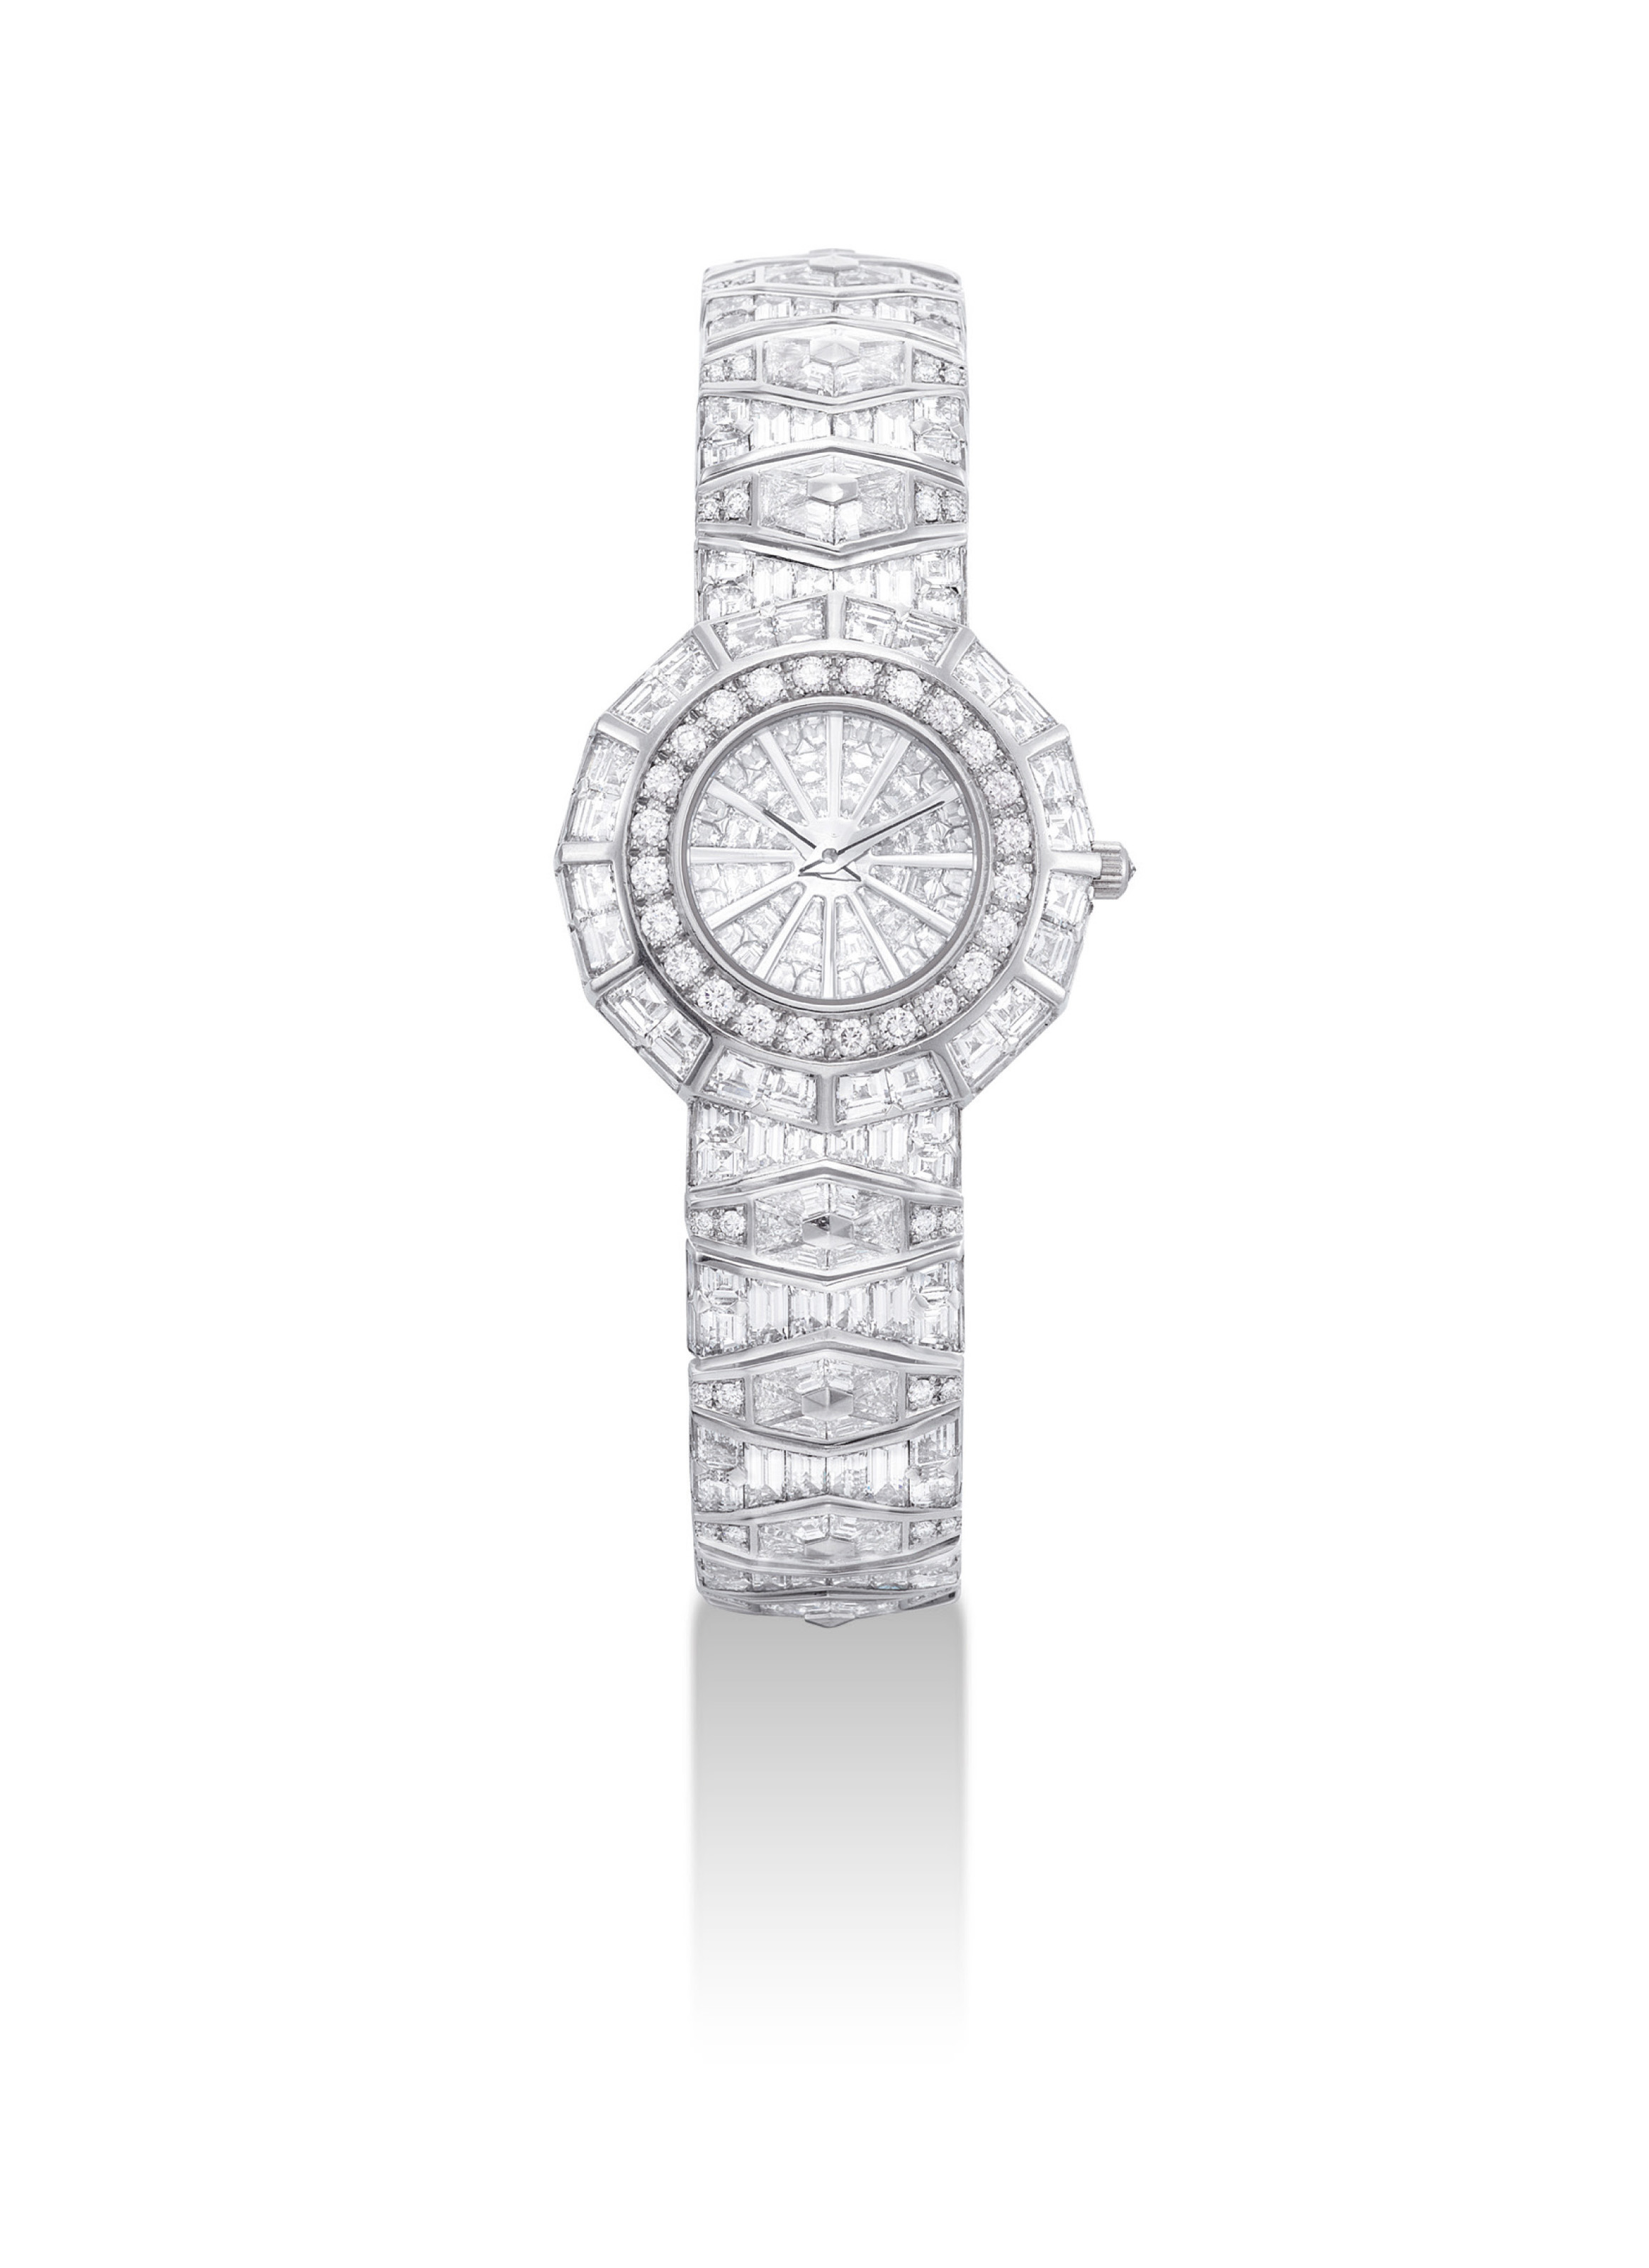 CORUM. A LADY'S IMPRESSIVE AND FINE PLATINUM AND DIAMOND-SET DODECAGON-SHAPED BRACELET WATCH